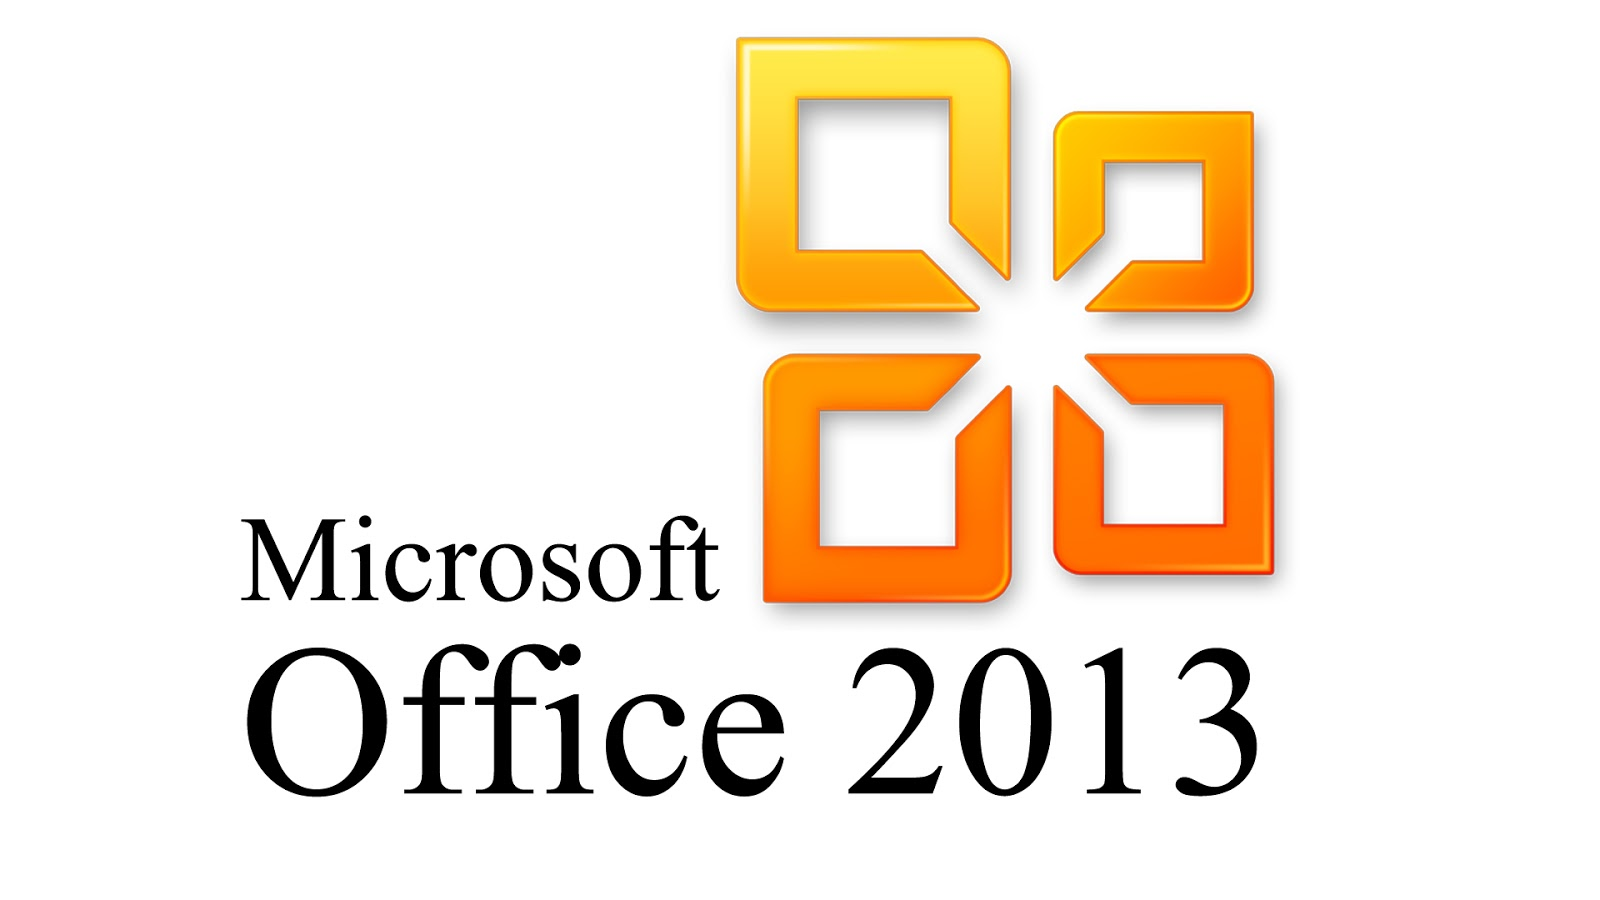 Microsoft Office 2013 Free Download - Microsoft Office PNG HD